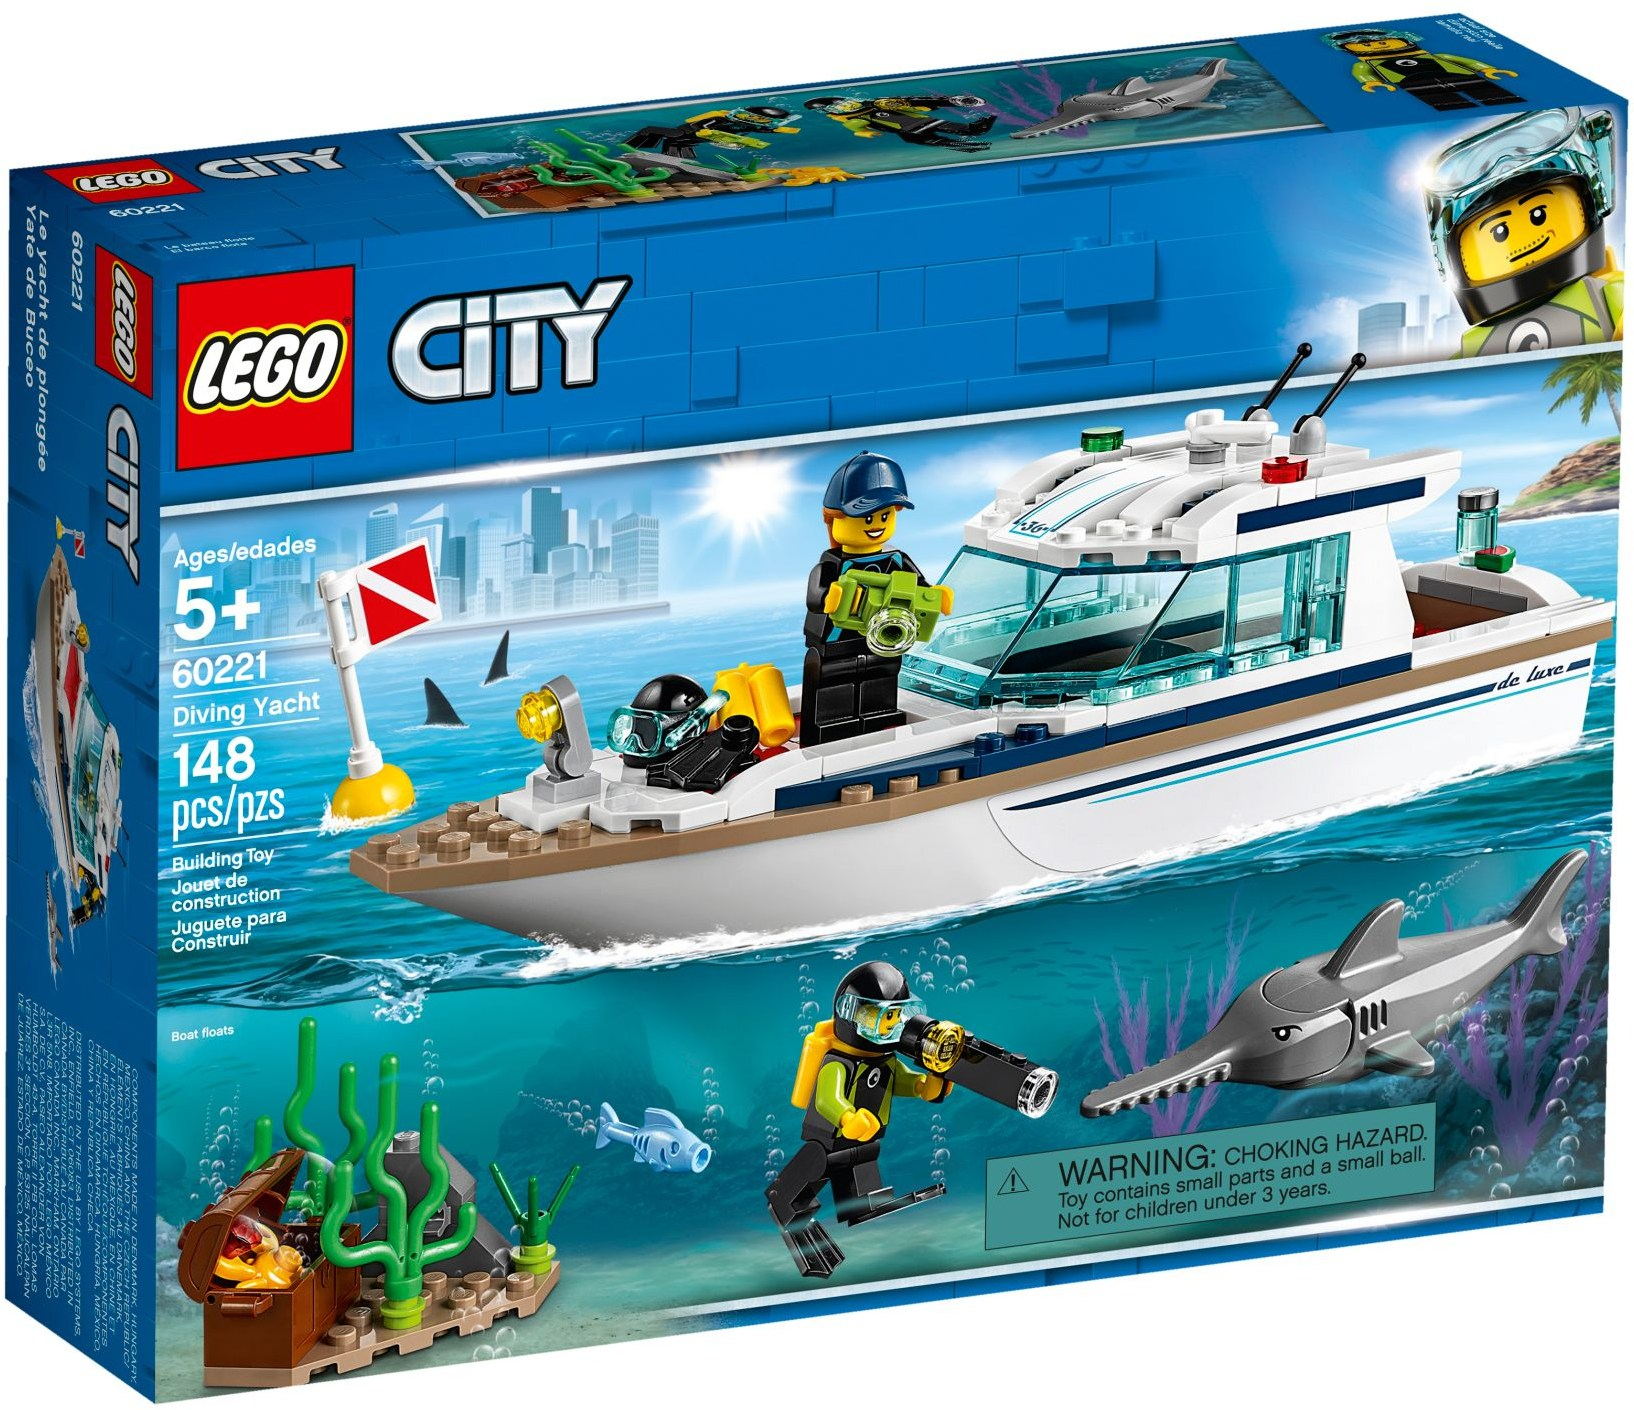 LEGO Town Sets: 60221 City Diving Yacht NEW